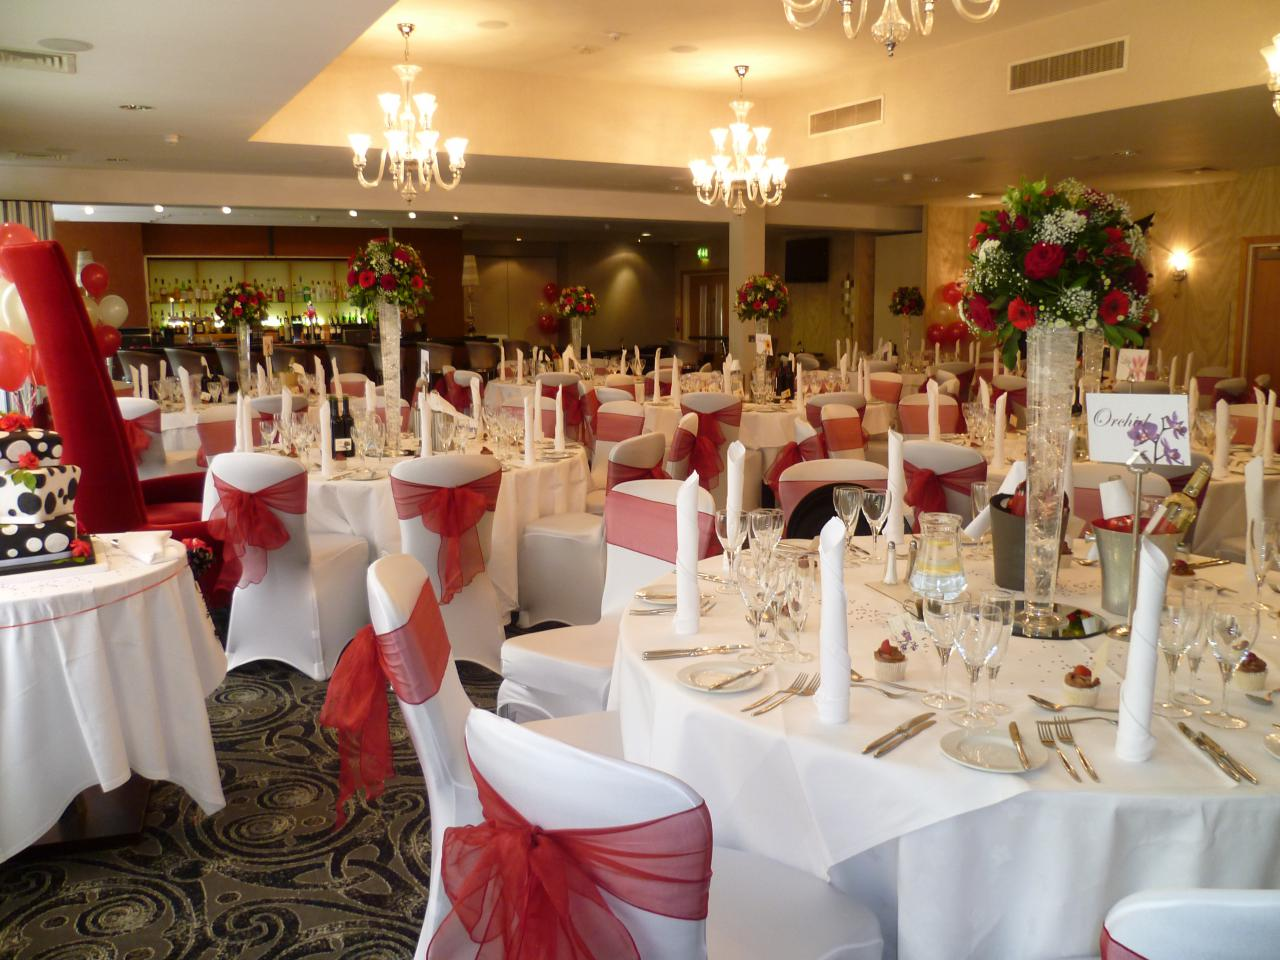 Slough hotel wedding venue gallery the pinewood hotel buckinghamshire red themed wedding junglespirit Images